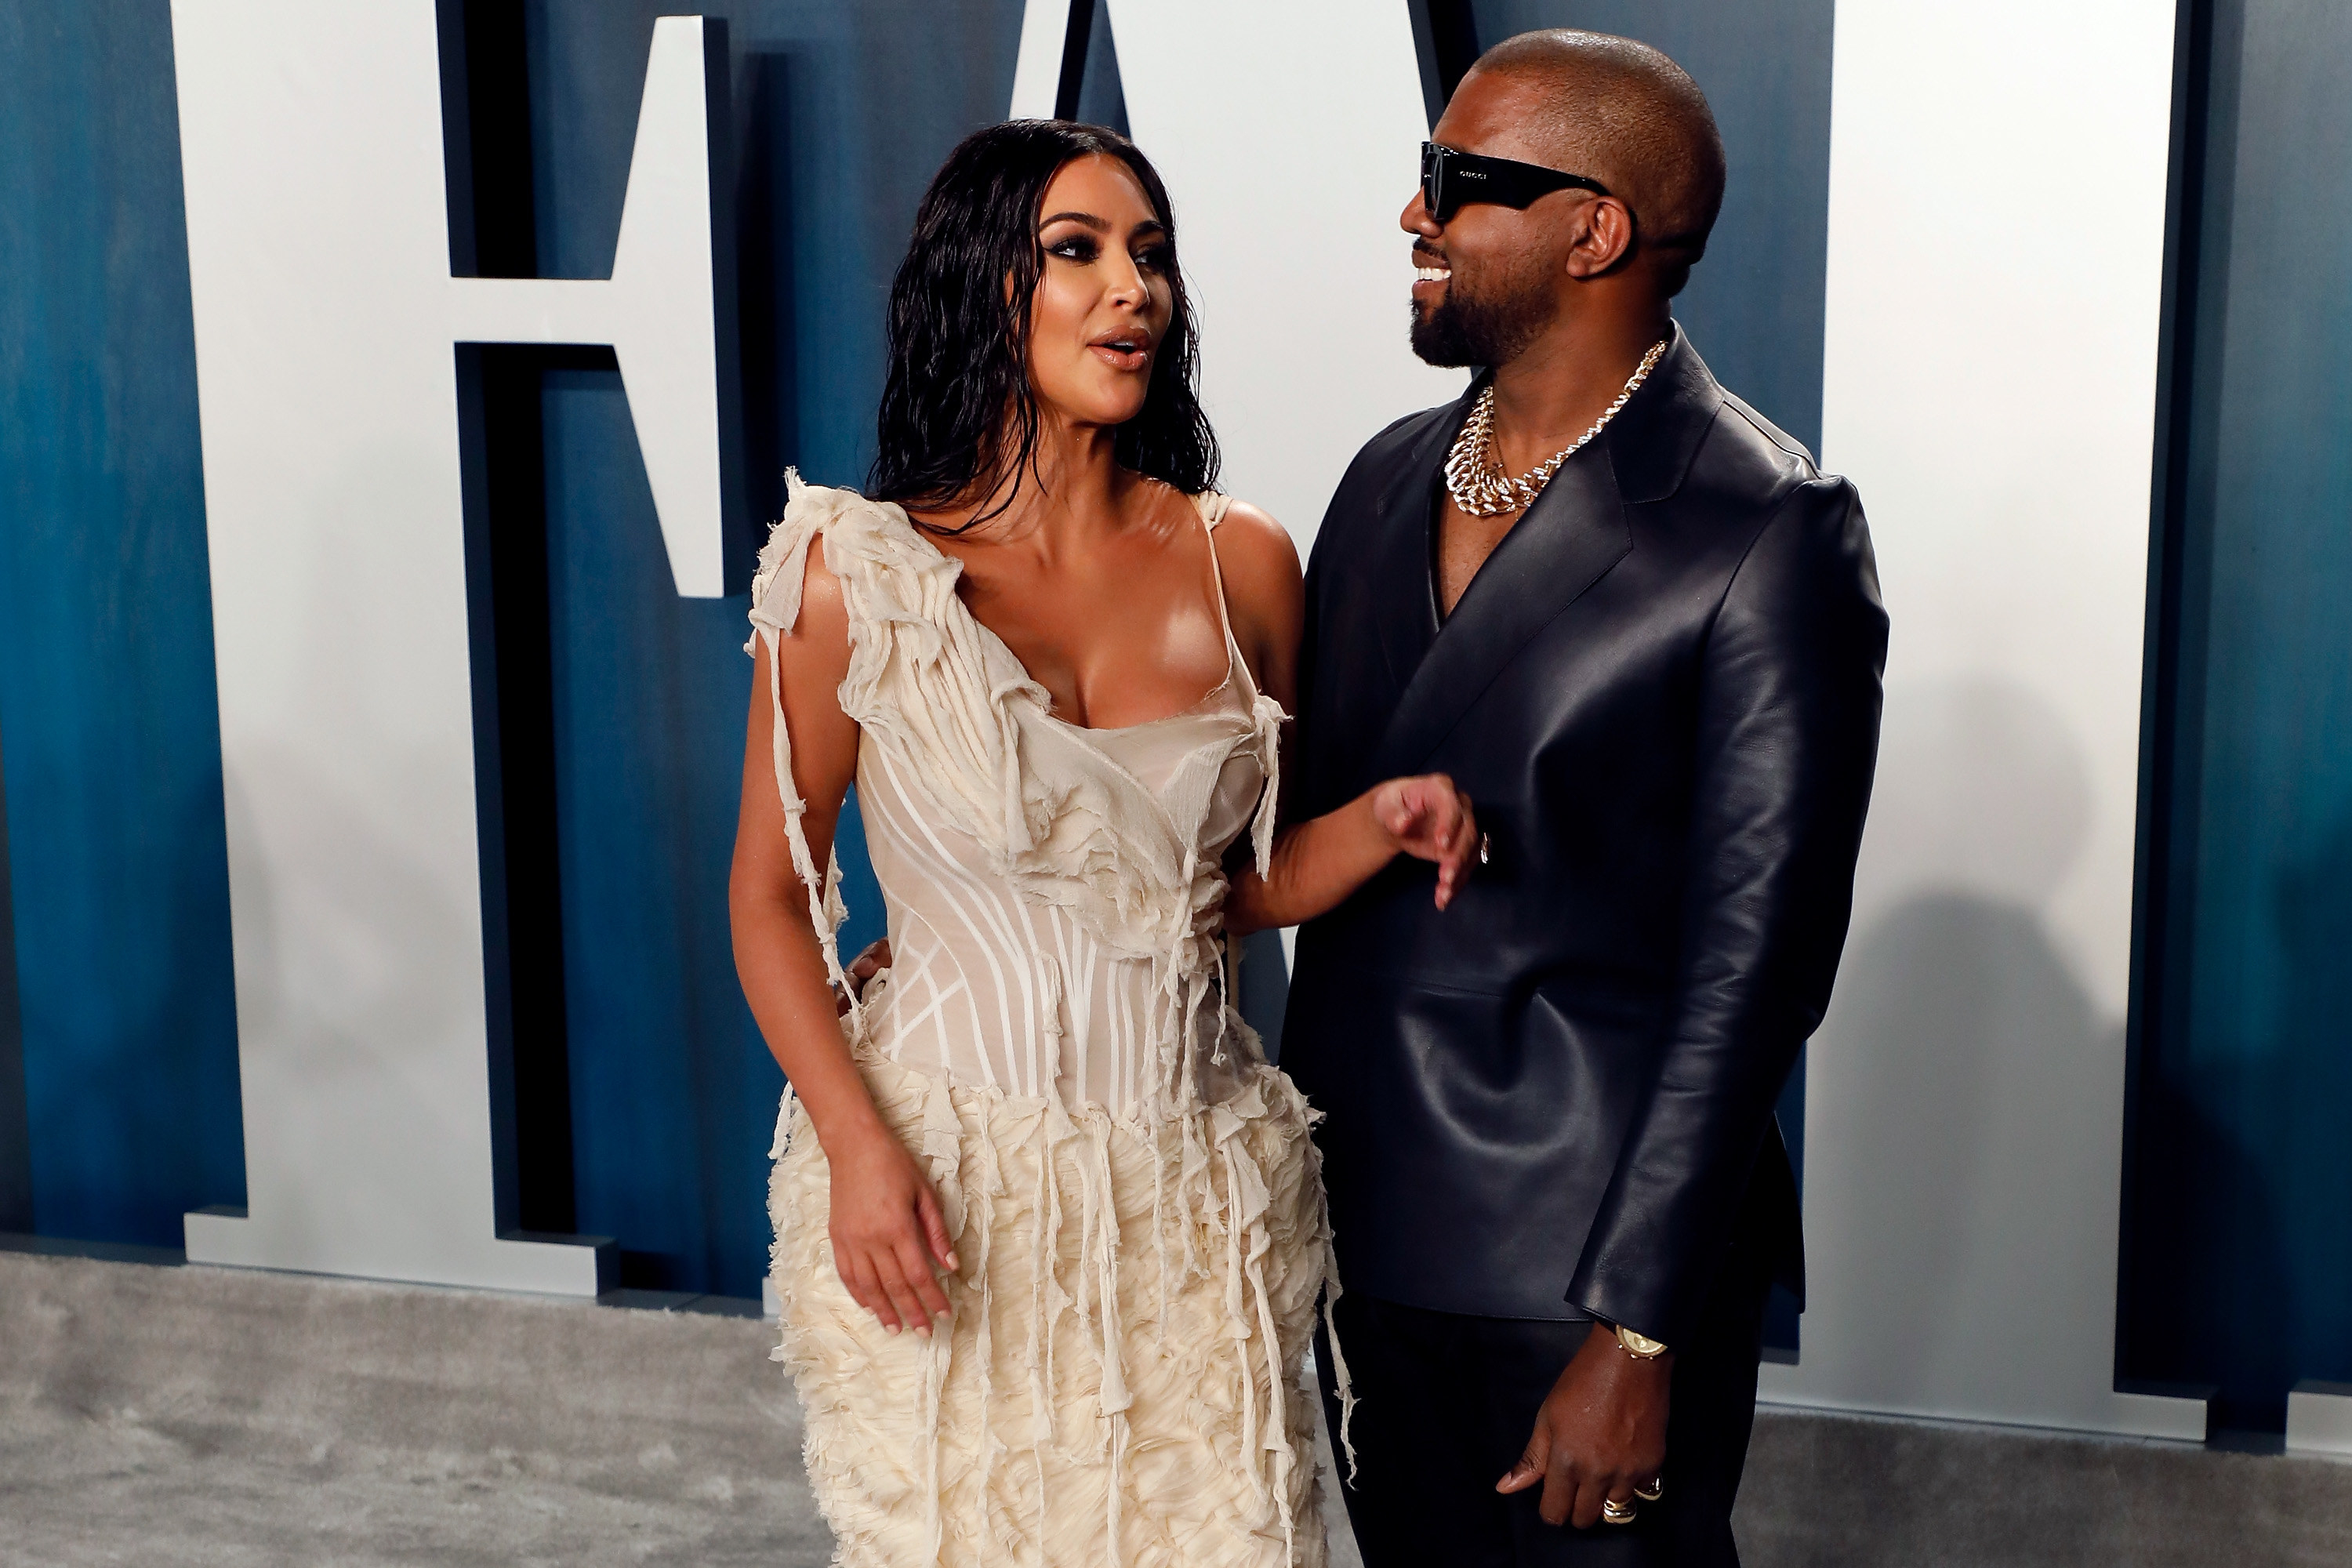 Kim Kardashian and Kanye West wear fashionable outfits in front of a Vanity Fair sign